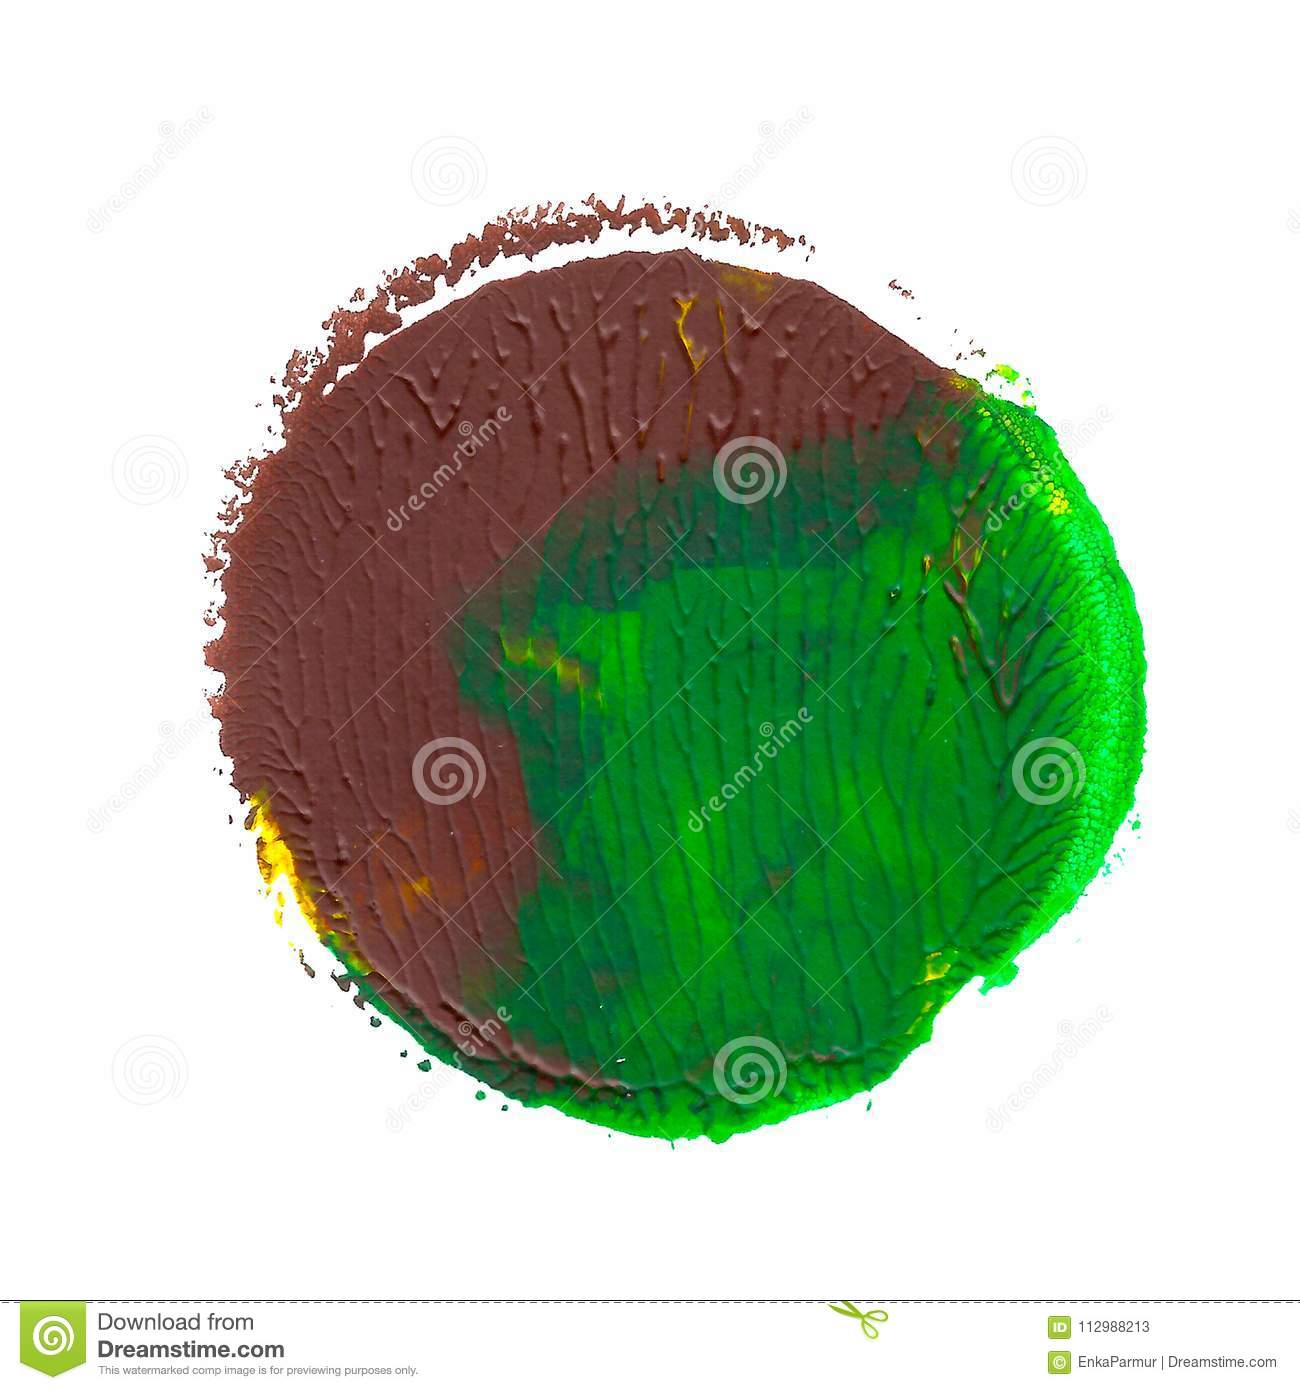 Abstract acrylic spot isolated on white background. Green, brown, yellow vibrant color.